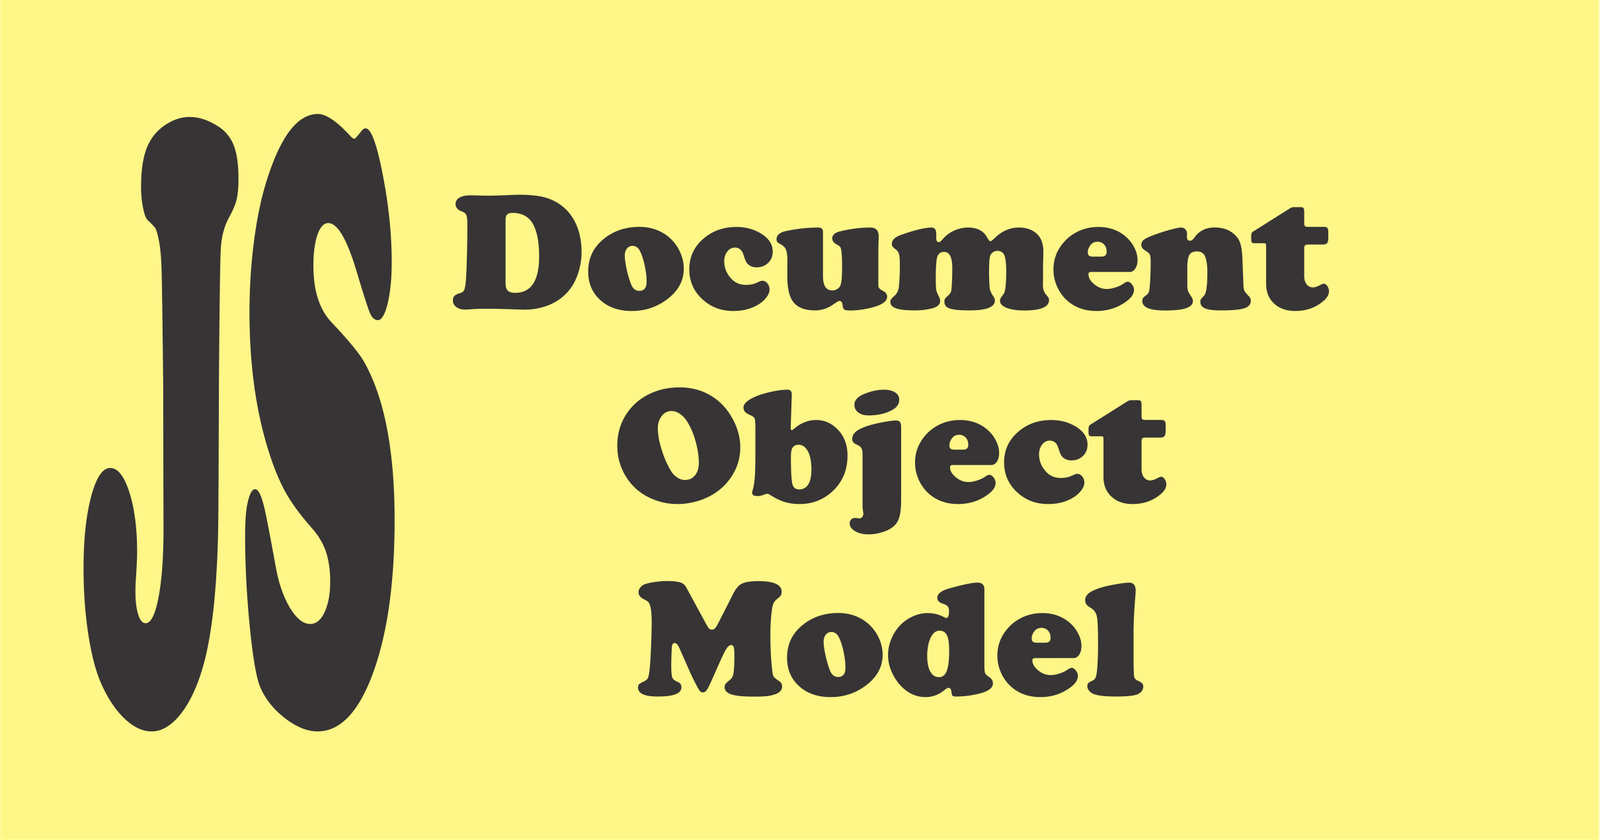 Document Object Model (DOM) Essentials With JavaScript